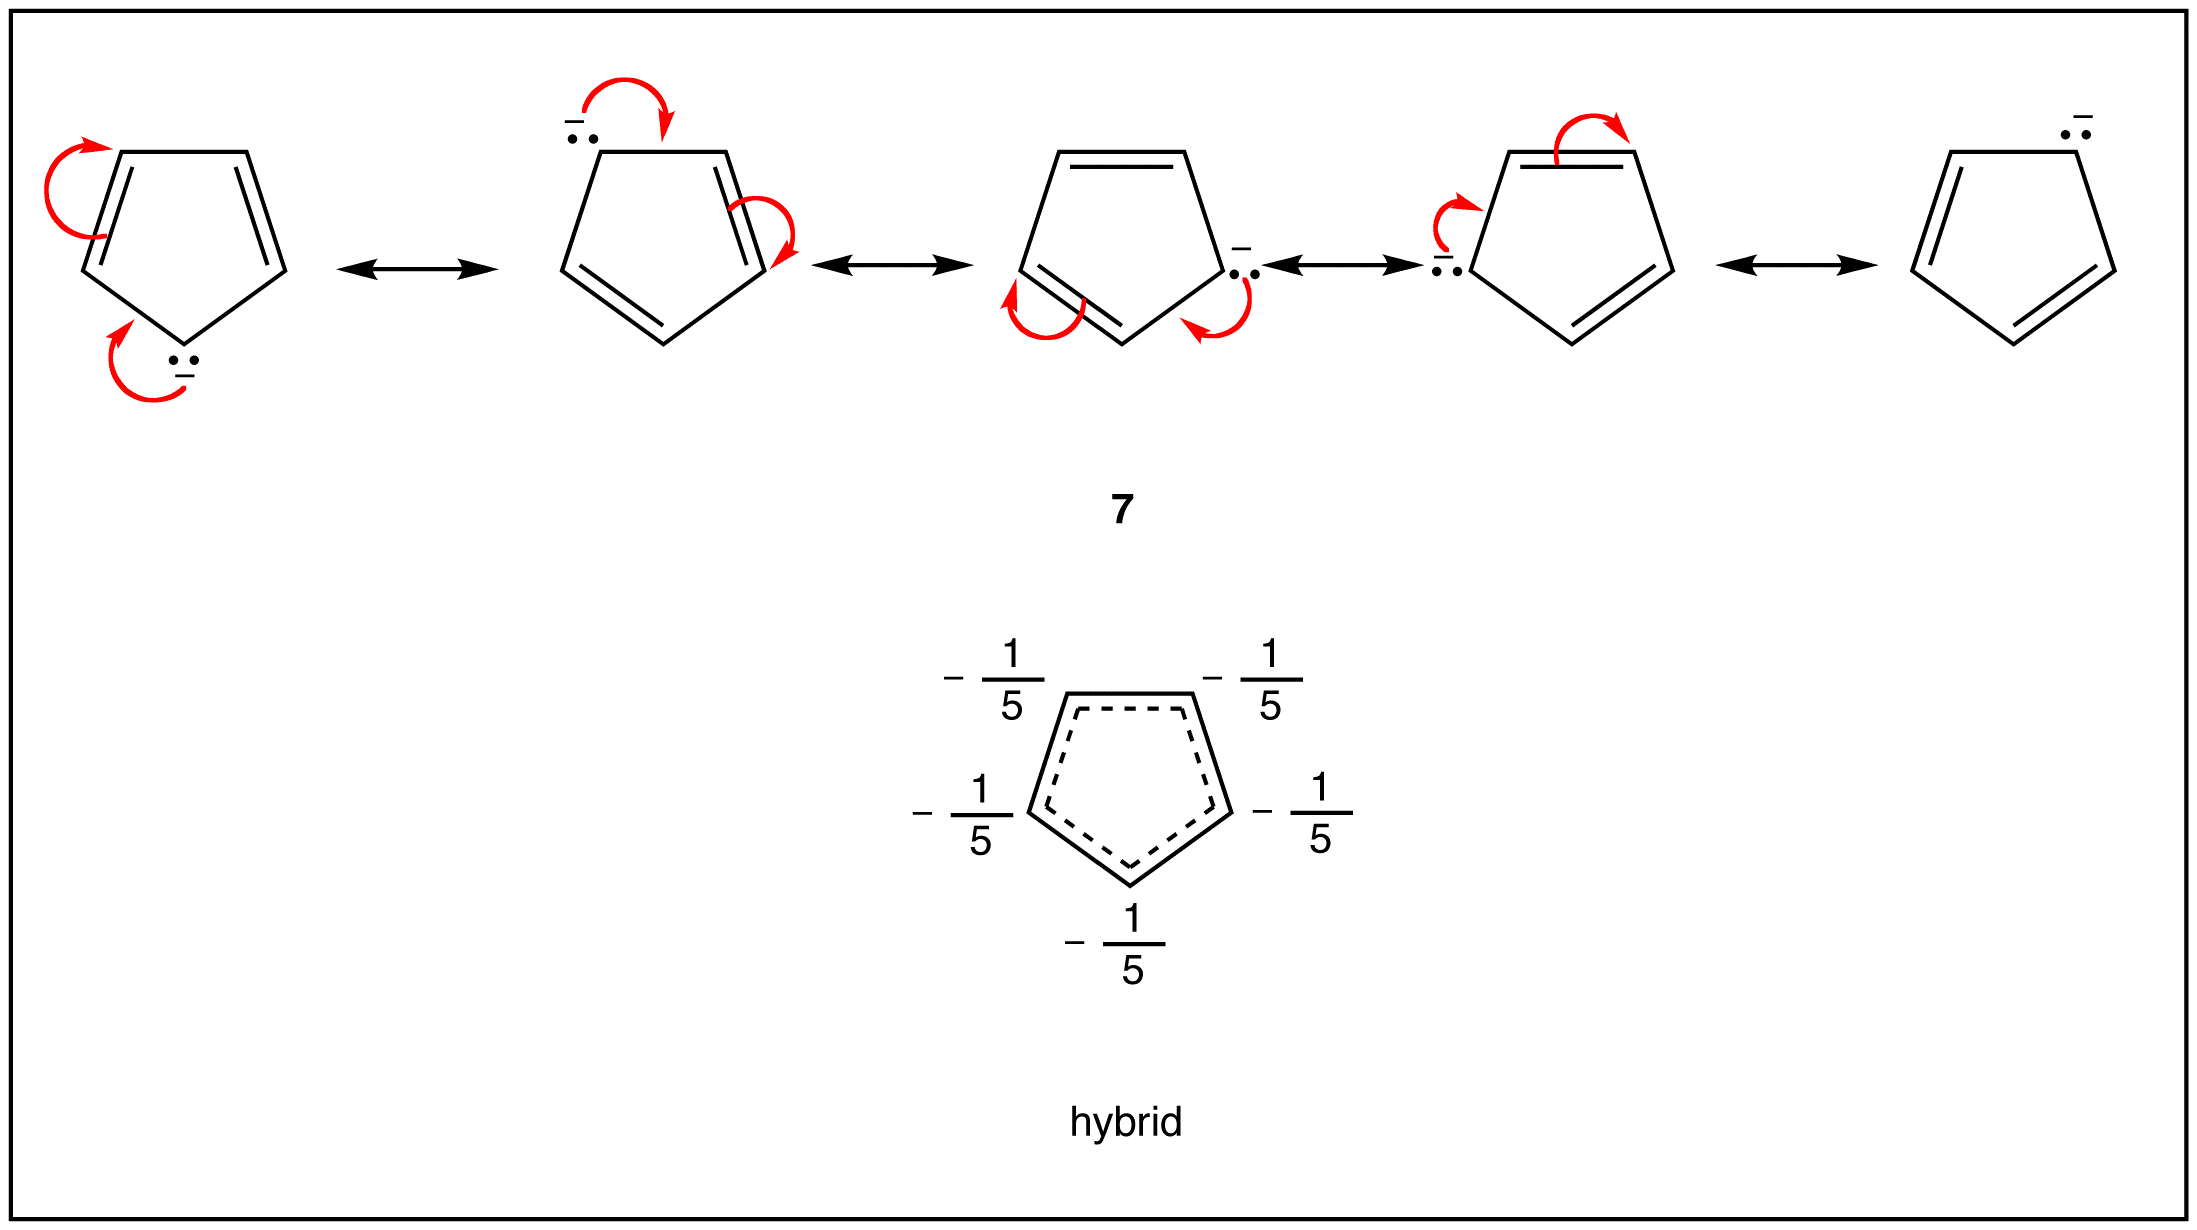 Aromatic Ochempal The Lewis Diagram Of Many A Molecule However Is Not Consistent With According To Resonance Theory Rings In 1 3 And 6 Also Should Have Loop Pi Electrons